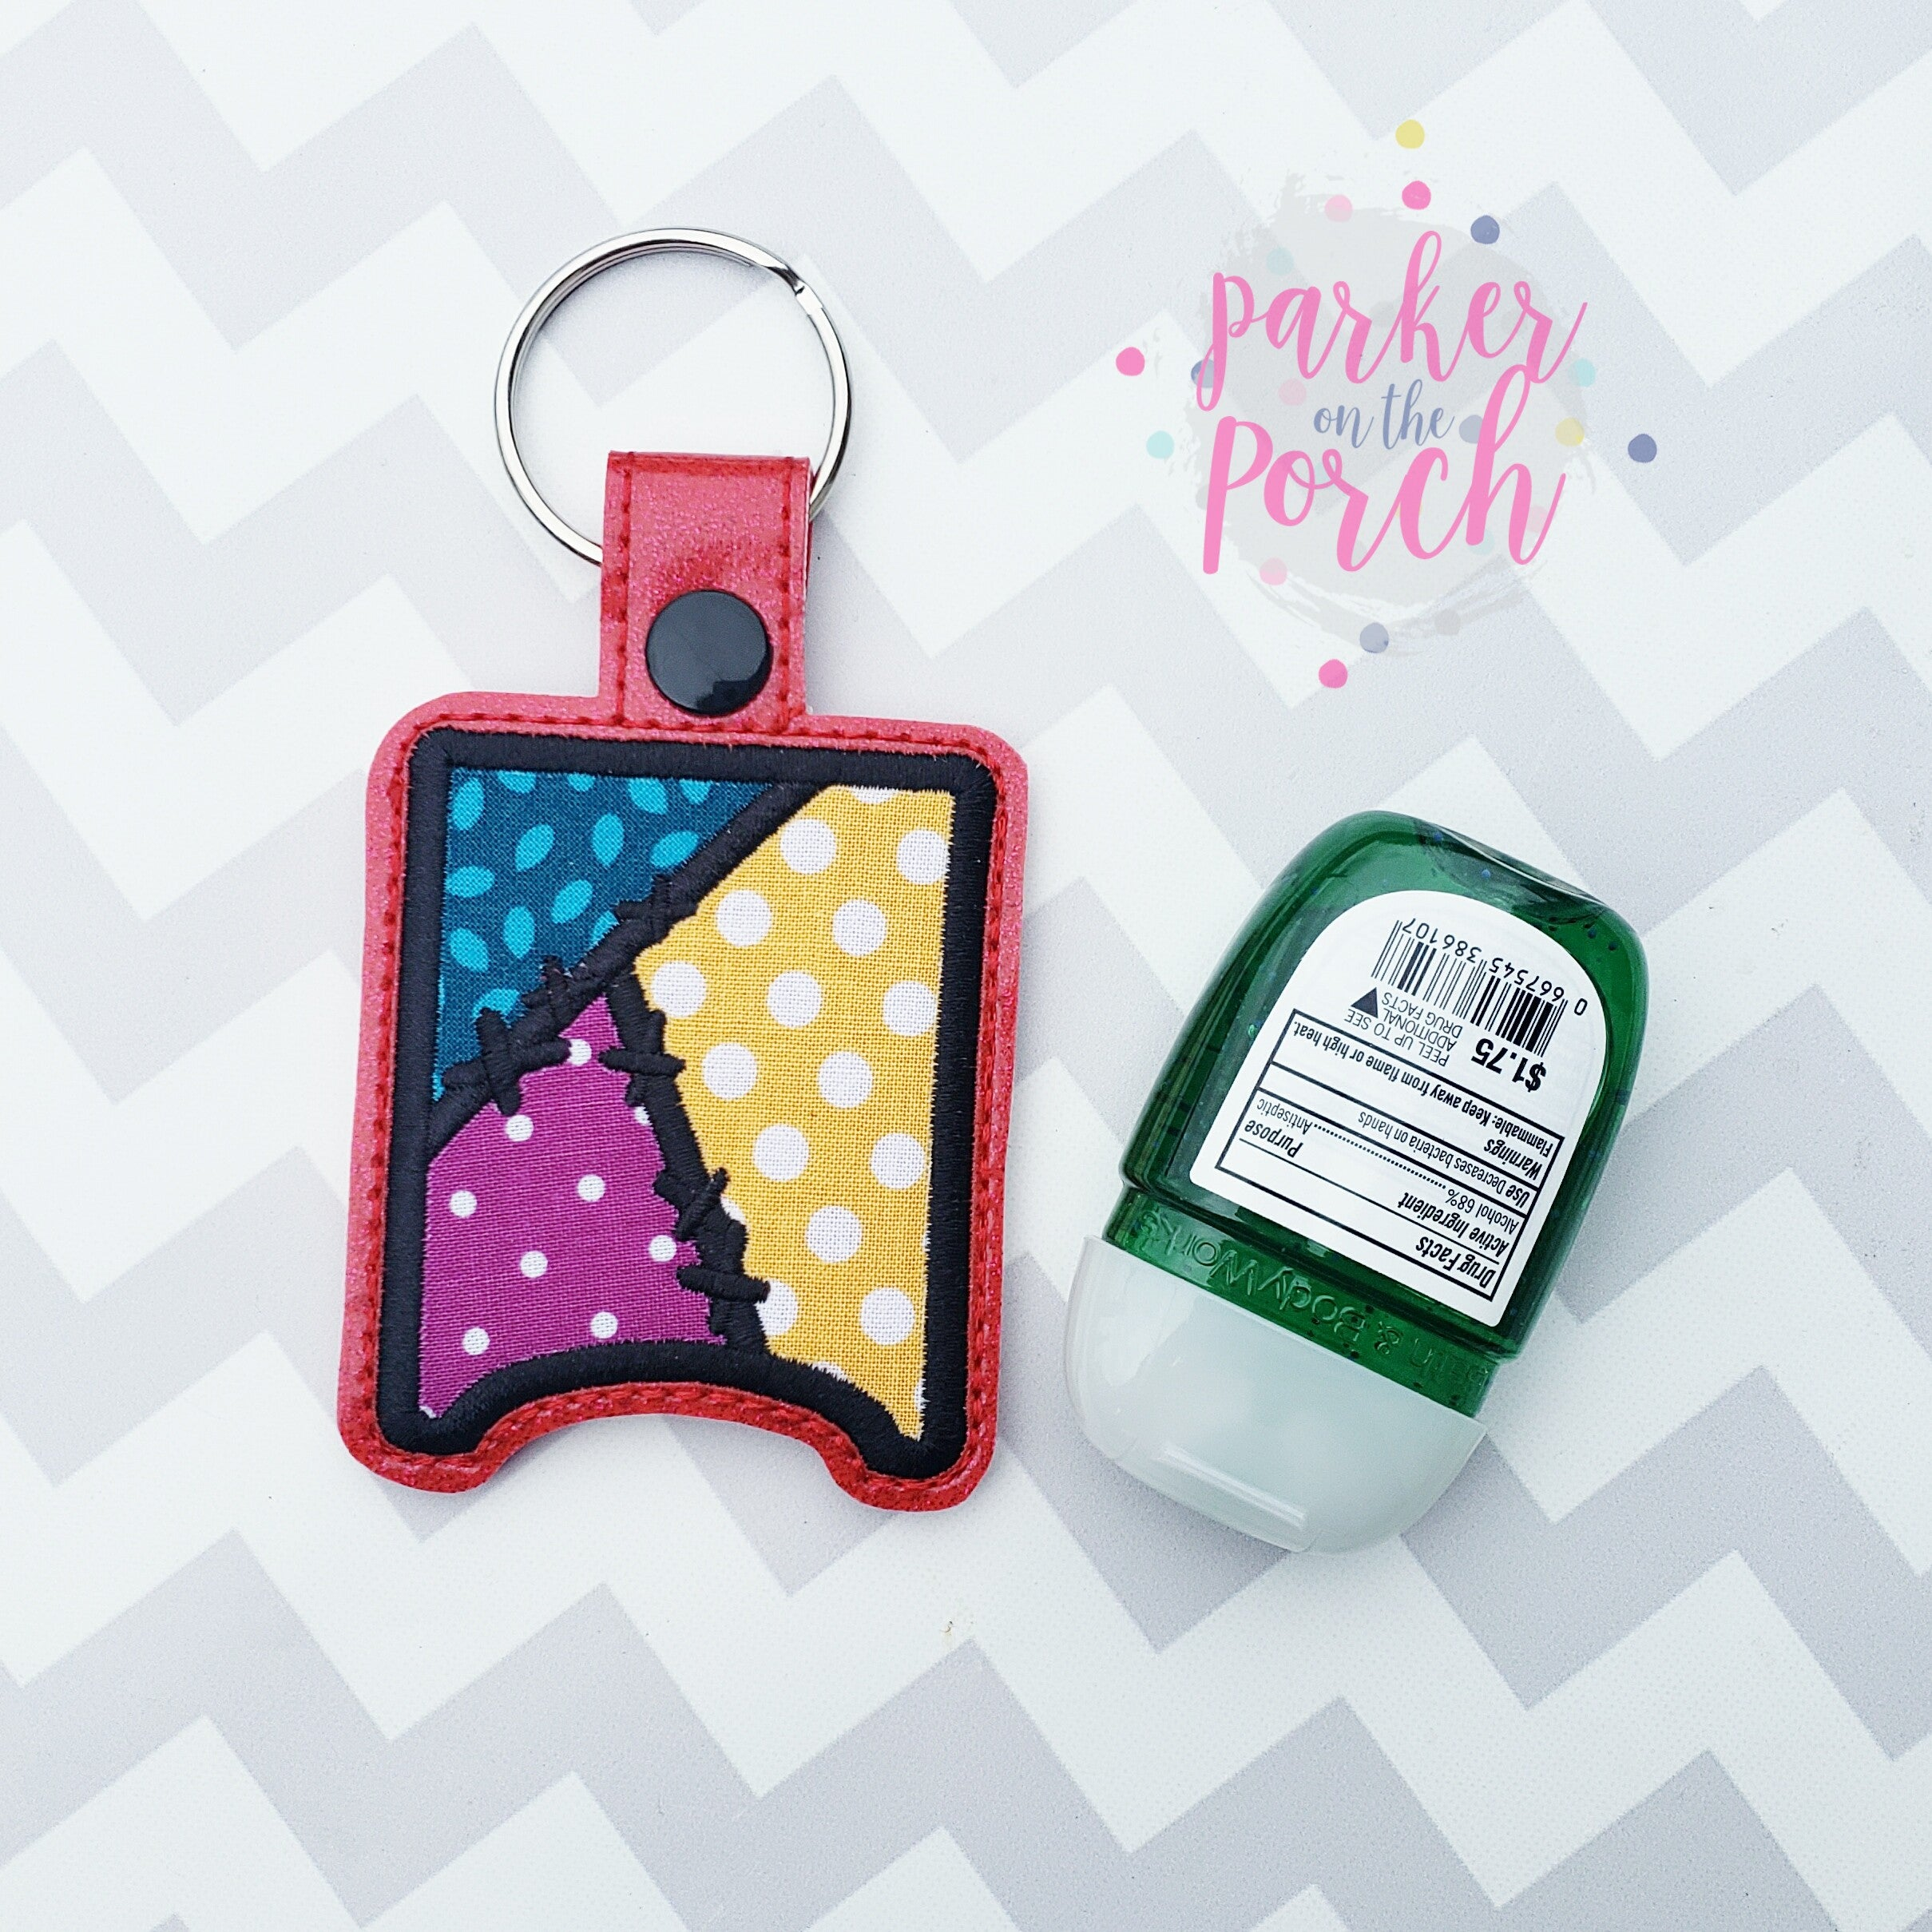 Digital Download- Magical Patchwork Pocket Bac Snaptab - in the hoop machine embroidery ITH pattern